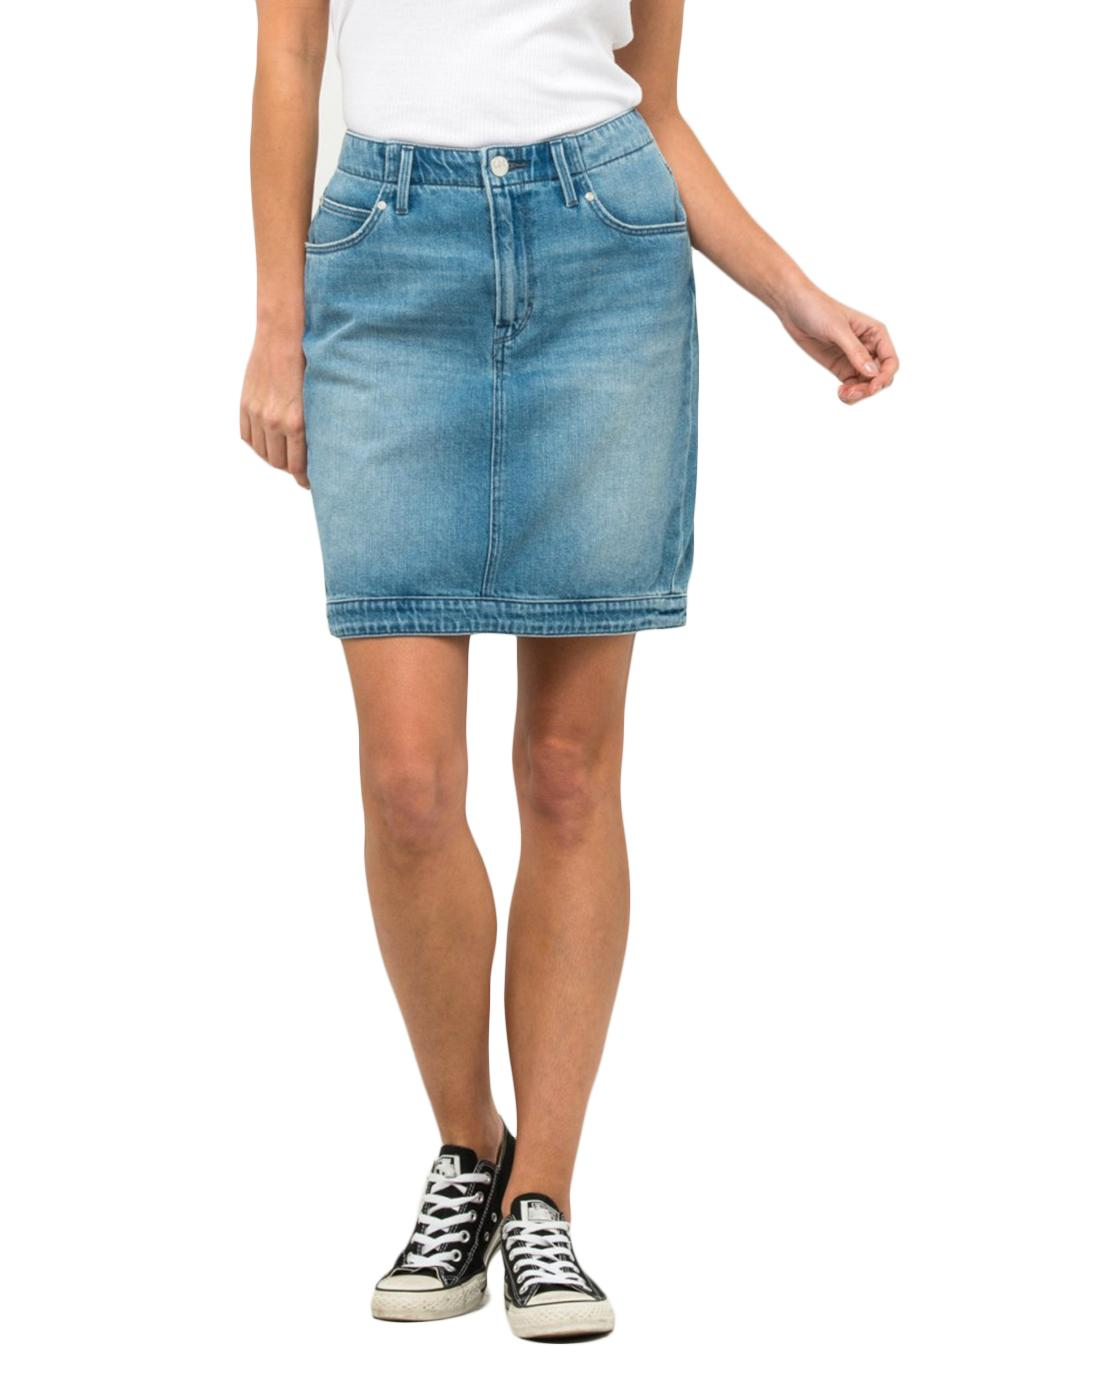 Mom LEE JEANS Womens Retro 90s Denim Pencil Skirt